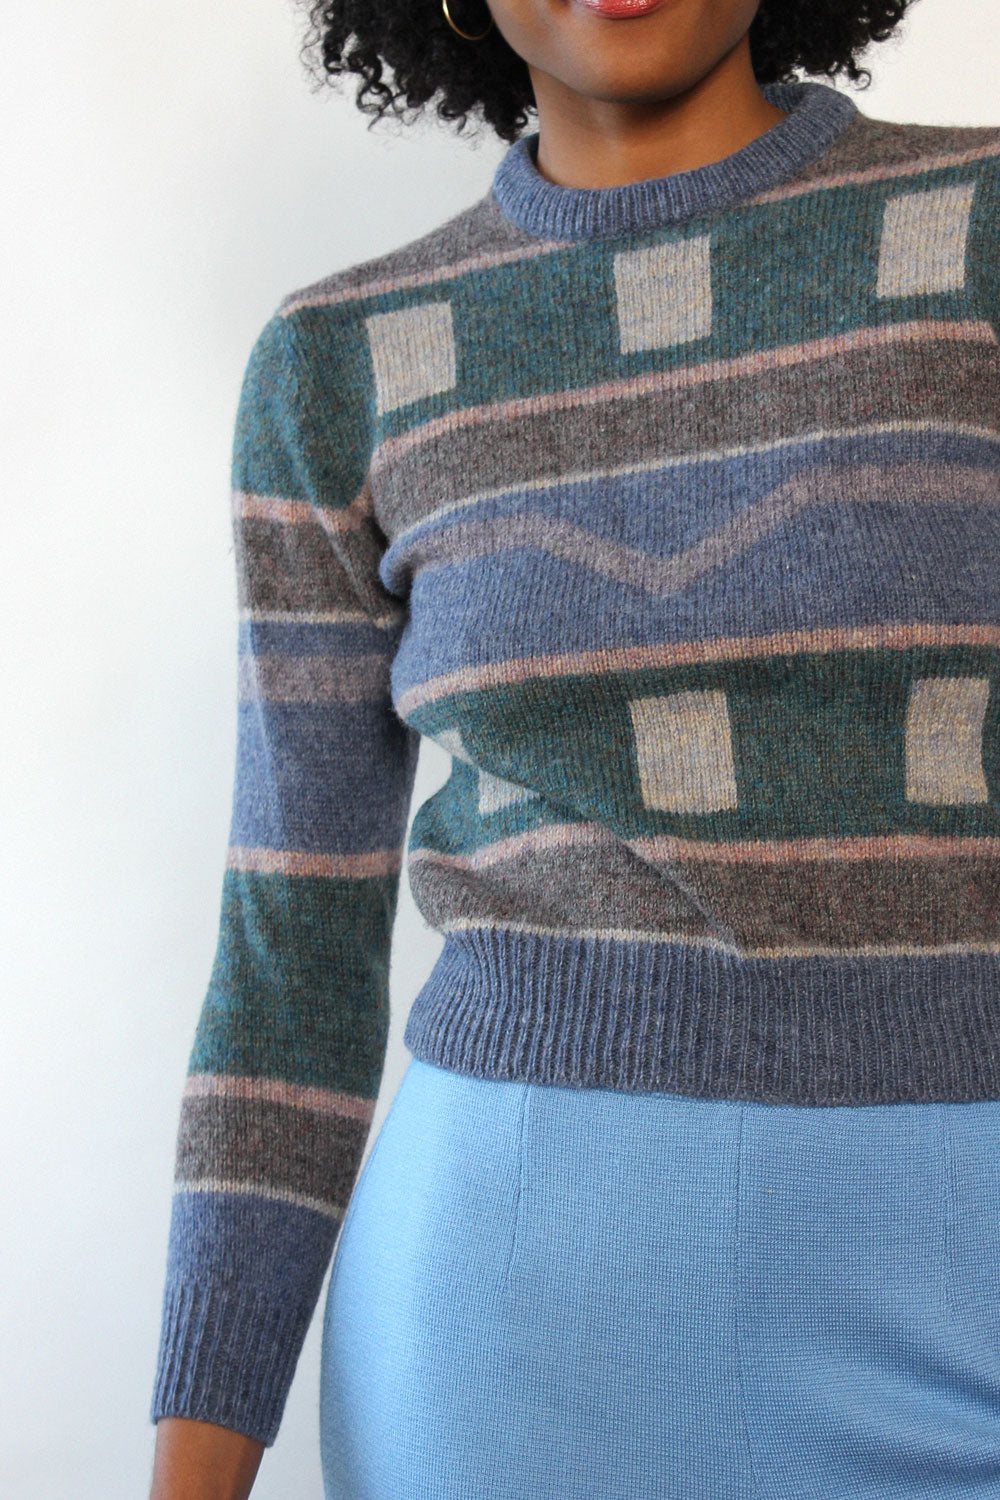 Altman Intarsia Sweater XS/S